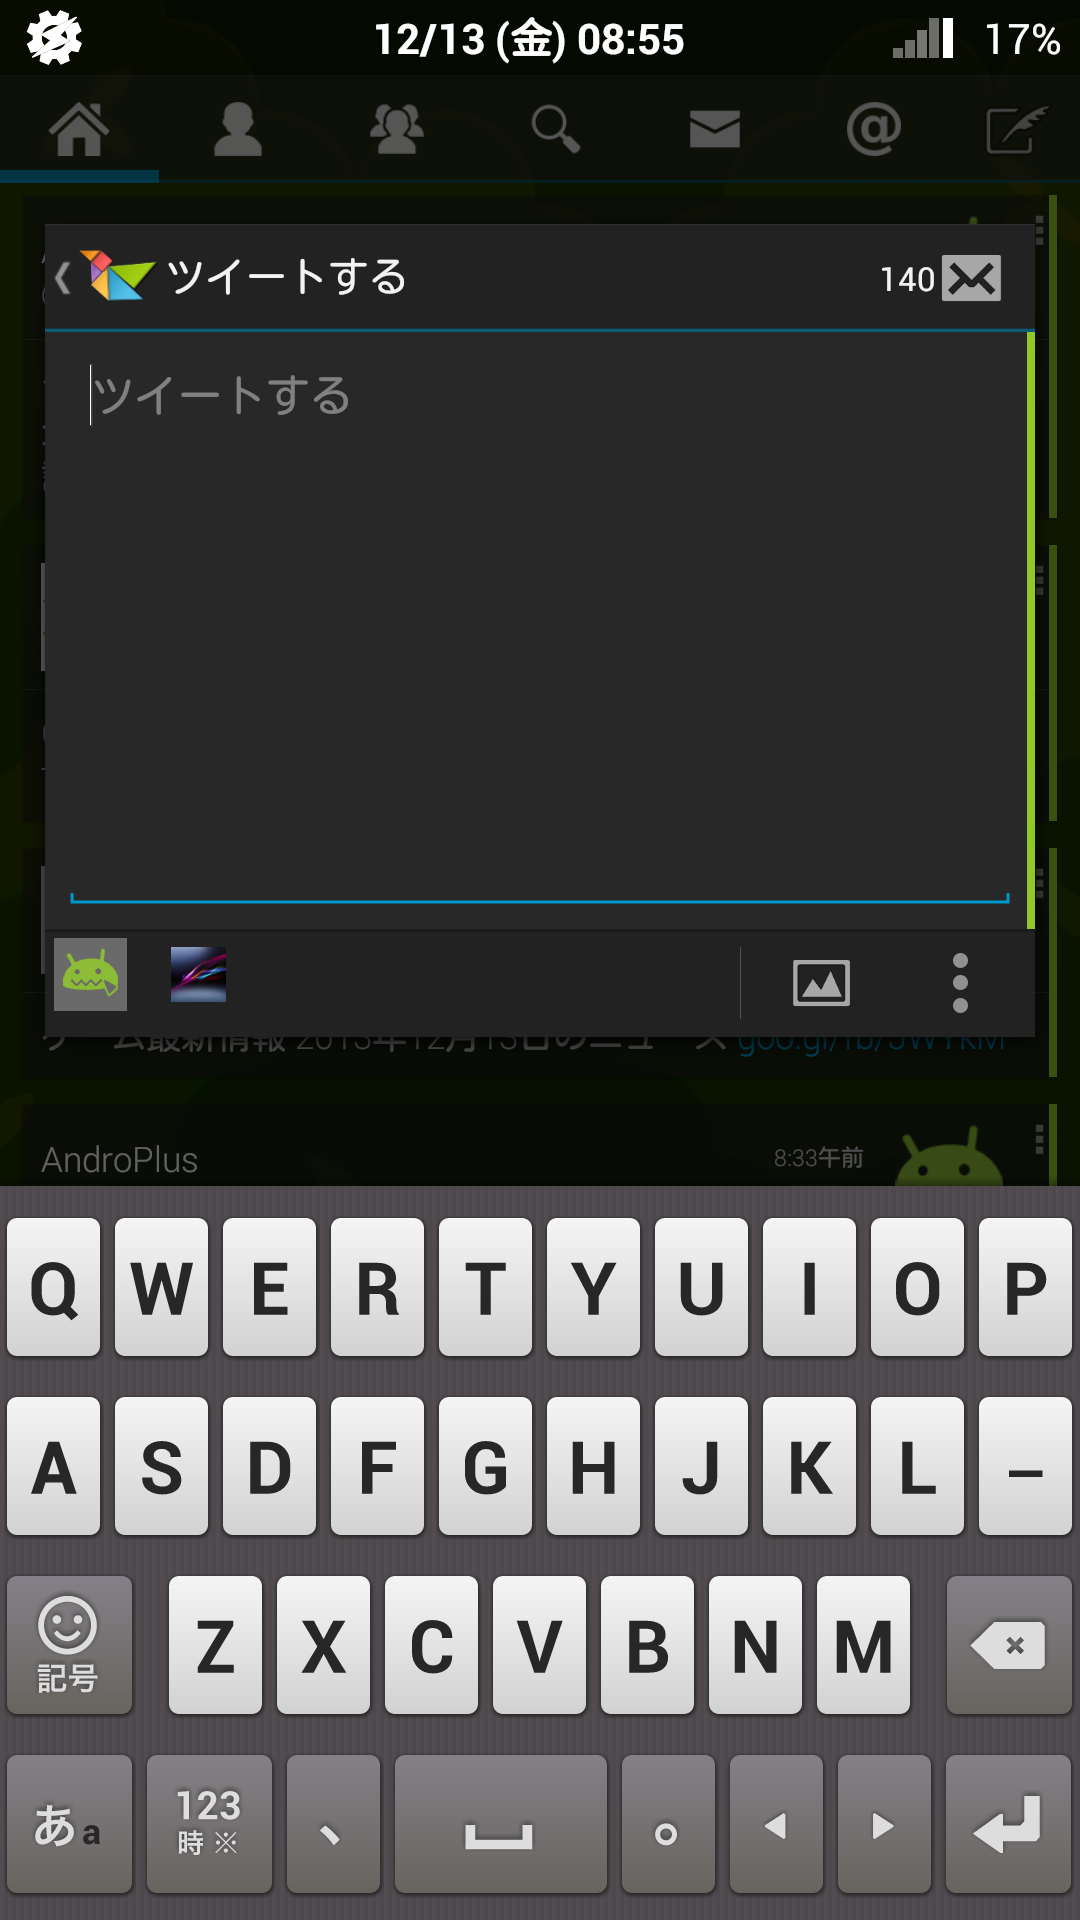 Twidere for Twitter - カードUI採用Twitterクライアント - AndroPlus